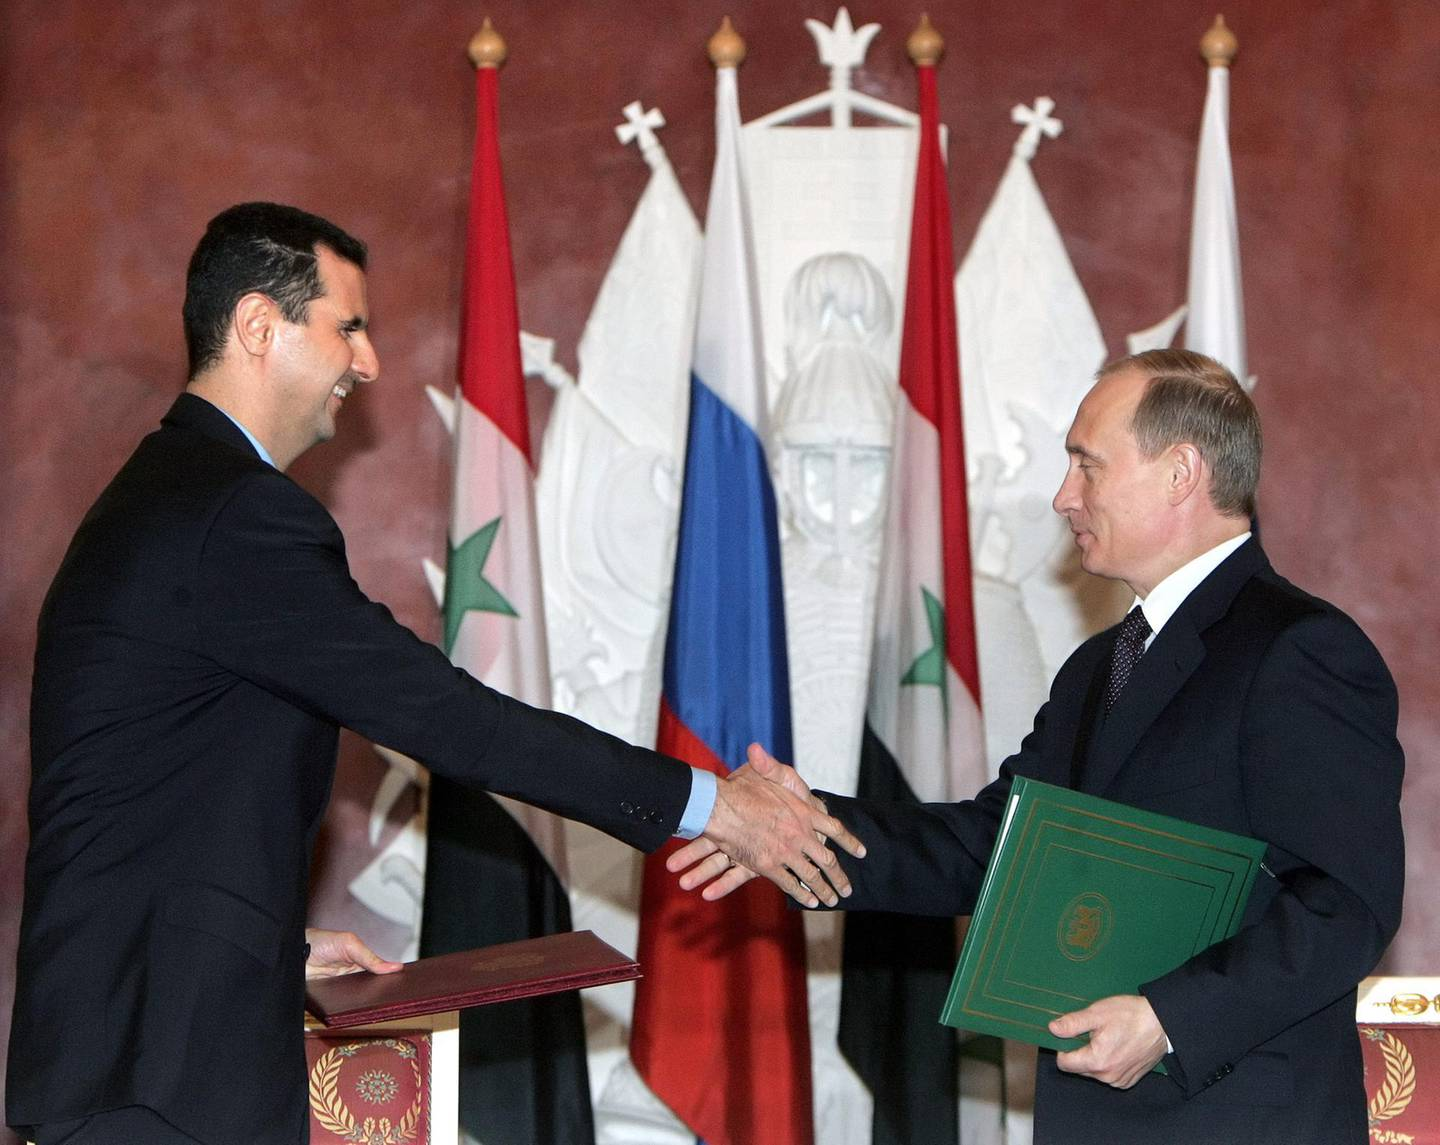 Russian President Vladimir Putin (R) shakes hands with his Syrian counterpart Bashar al-Assad during the signing ceremony in the Moscow's Kremlin, 25 January 2005. Russia and Syria have reached a deal on restructuring debt owed by Syria left over from the Soviet era, the Syrian and Russian presidents announced after Kremlin talks. AFP PHOTO / POOL / SERGEI CHIRIKOV (Photo by SERGEI CHIRIKOV / POOL / AFP)